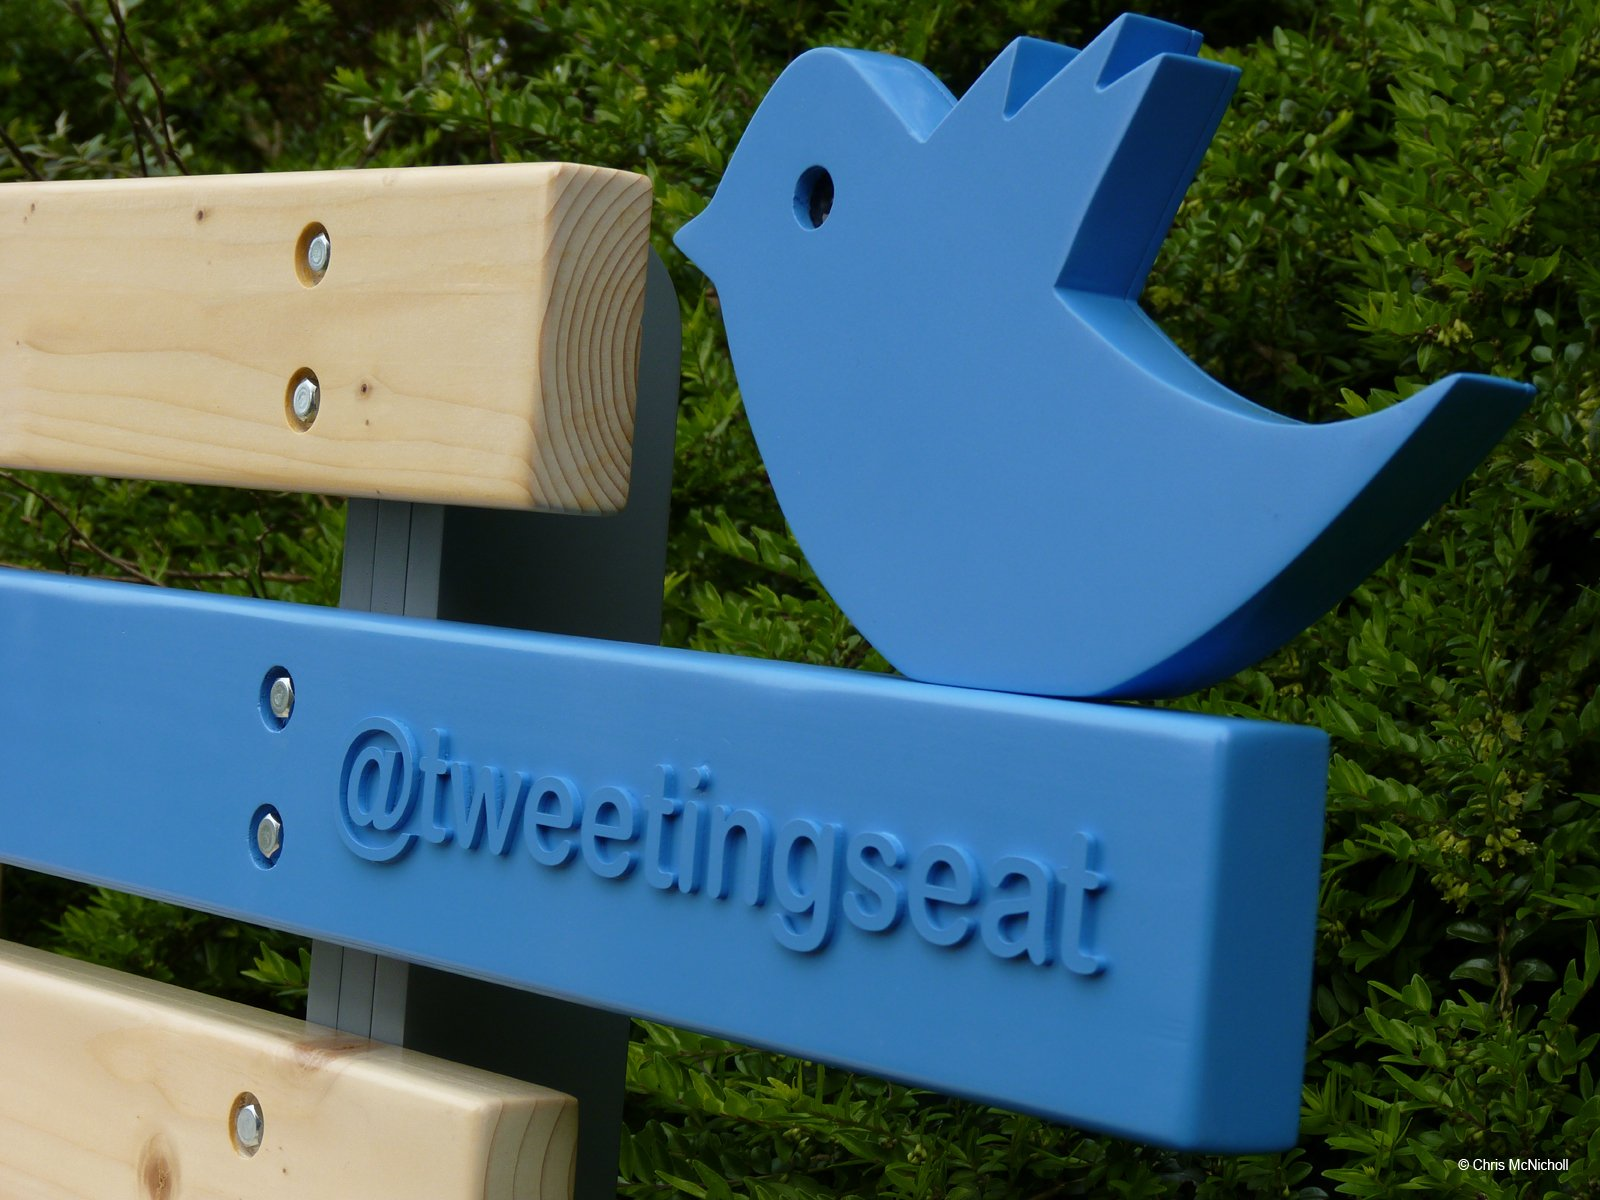 TweetingSeat: Connecting the Digital and the Physical